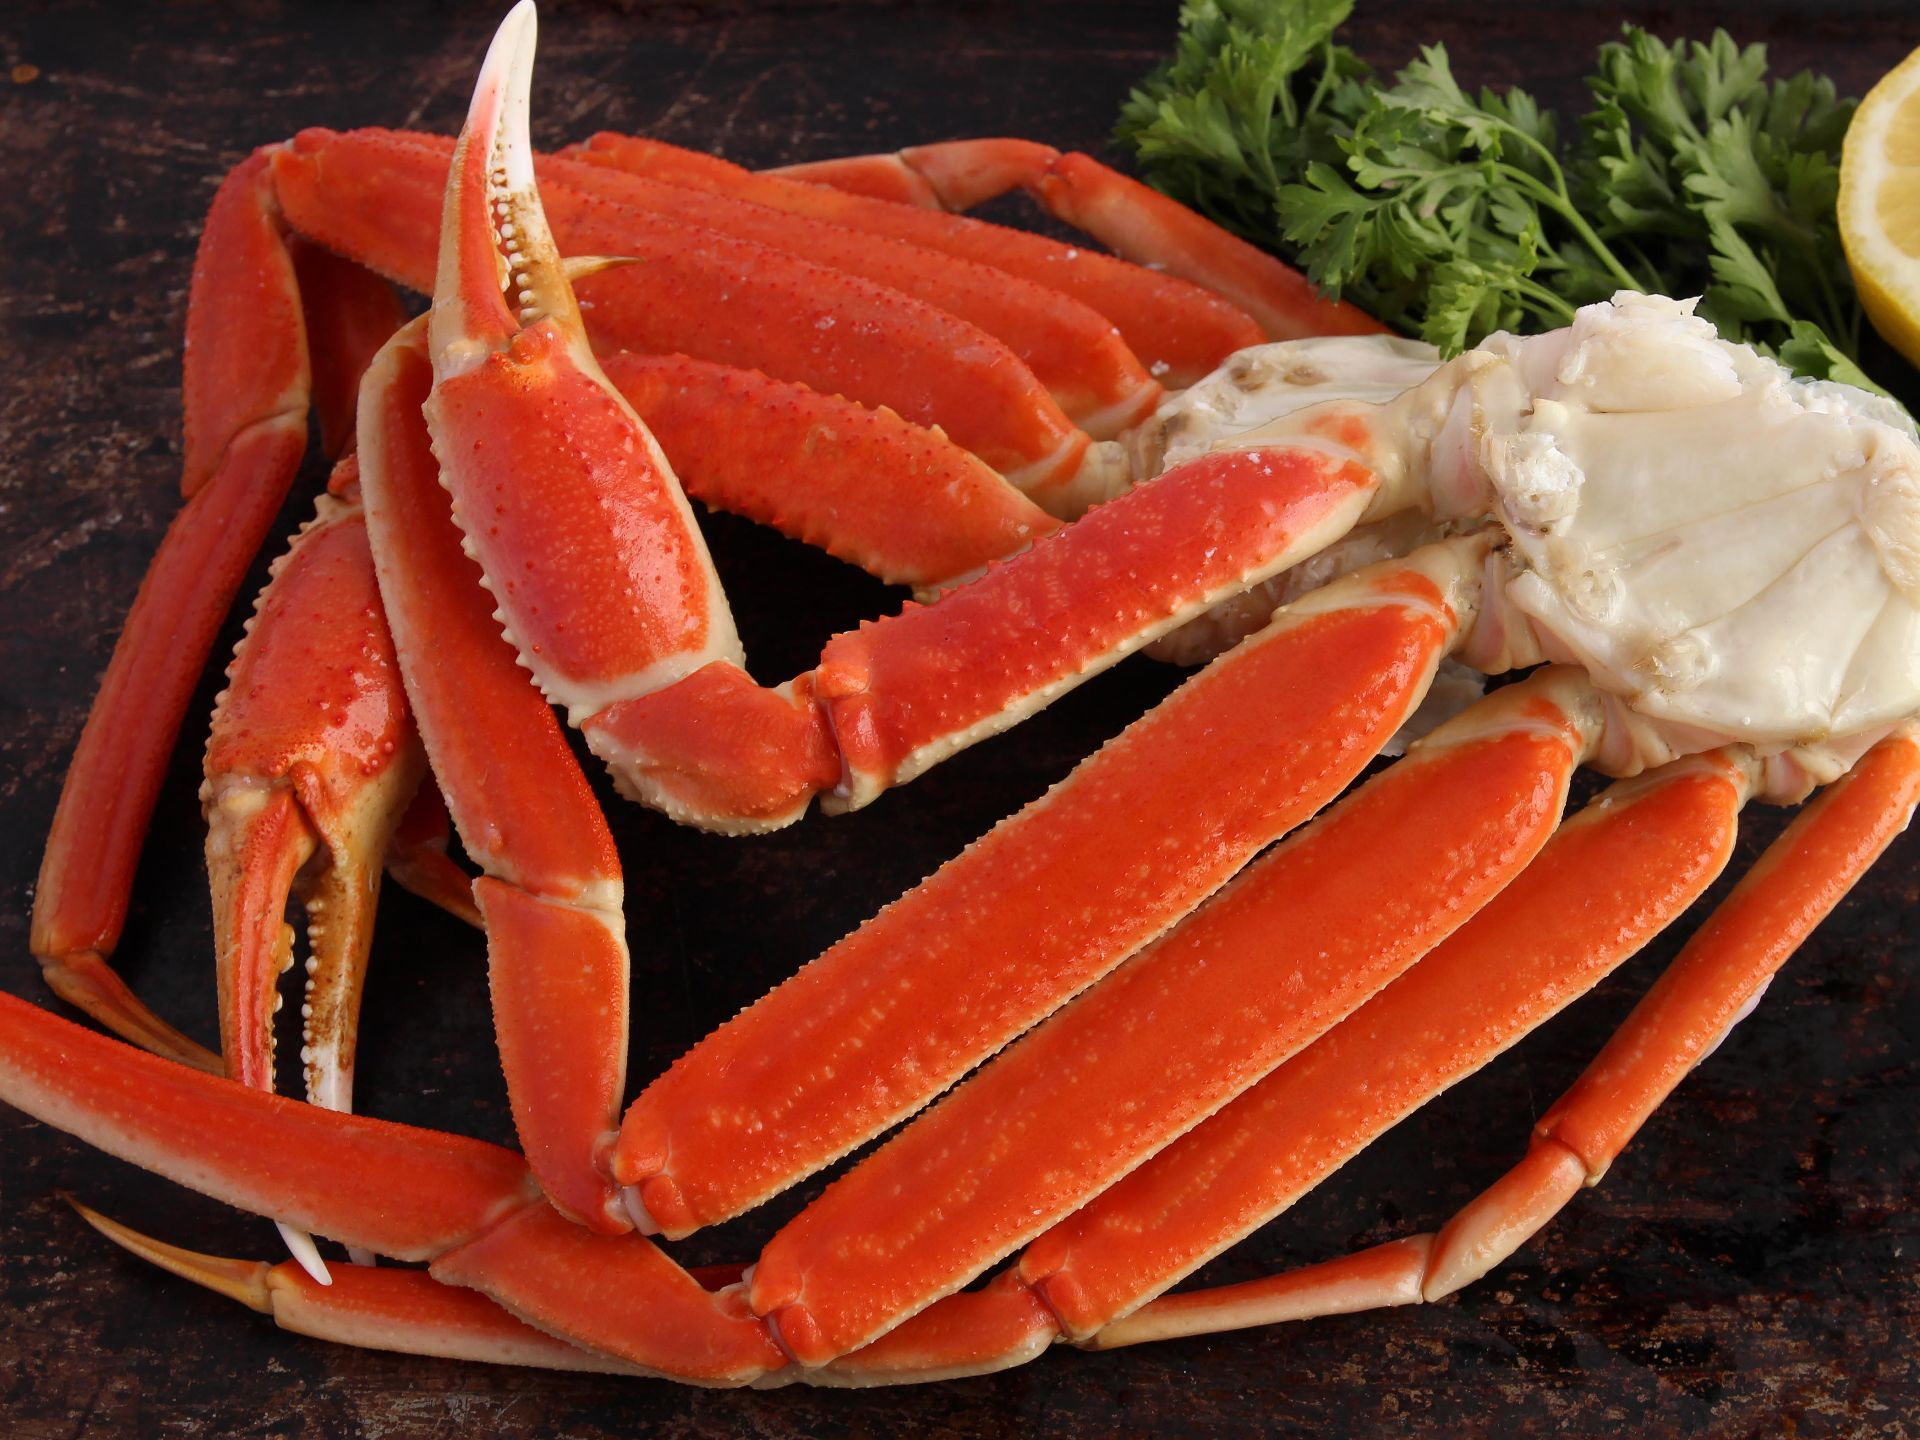 King crab legs on a dark wood background with parsley and lemon on the side